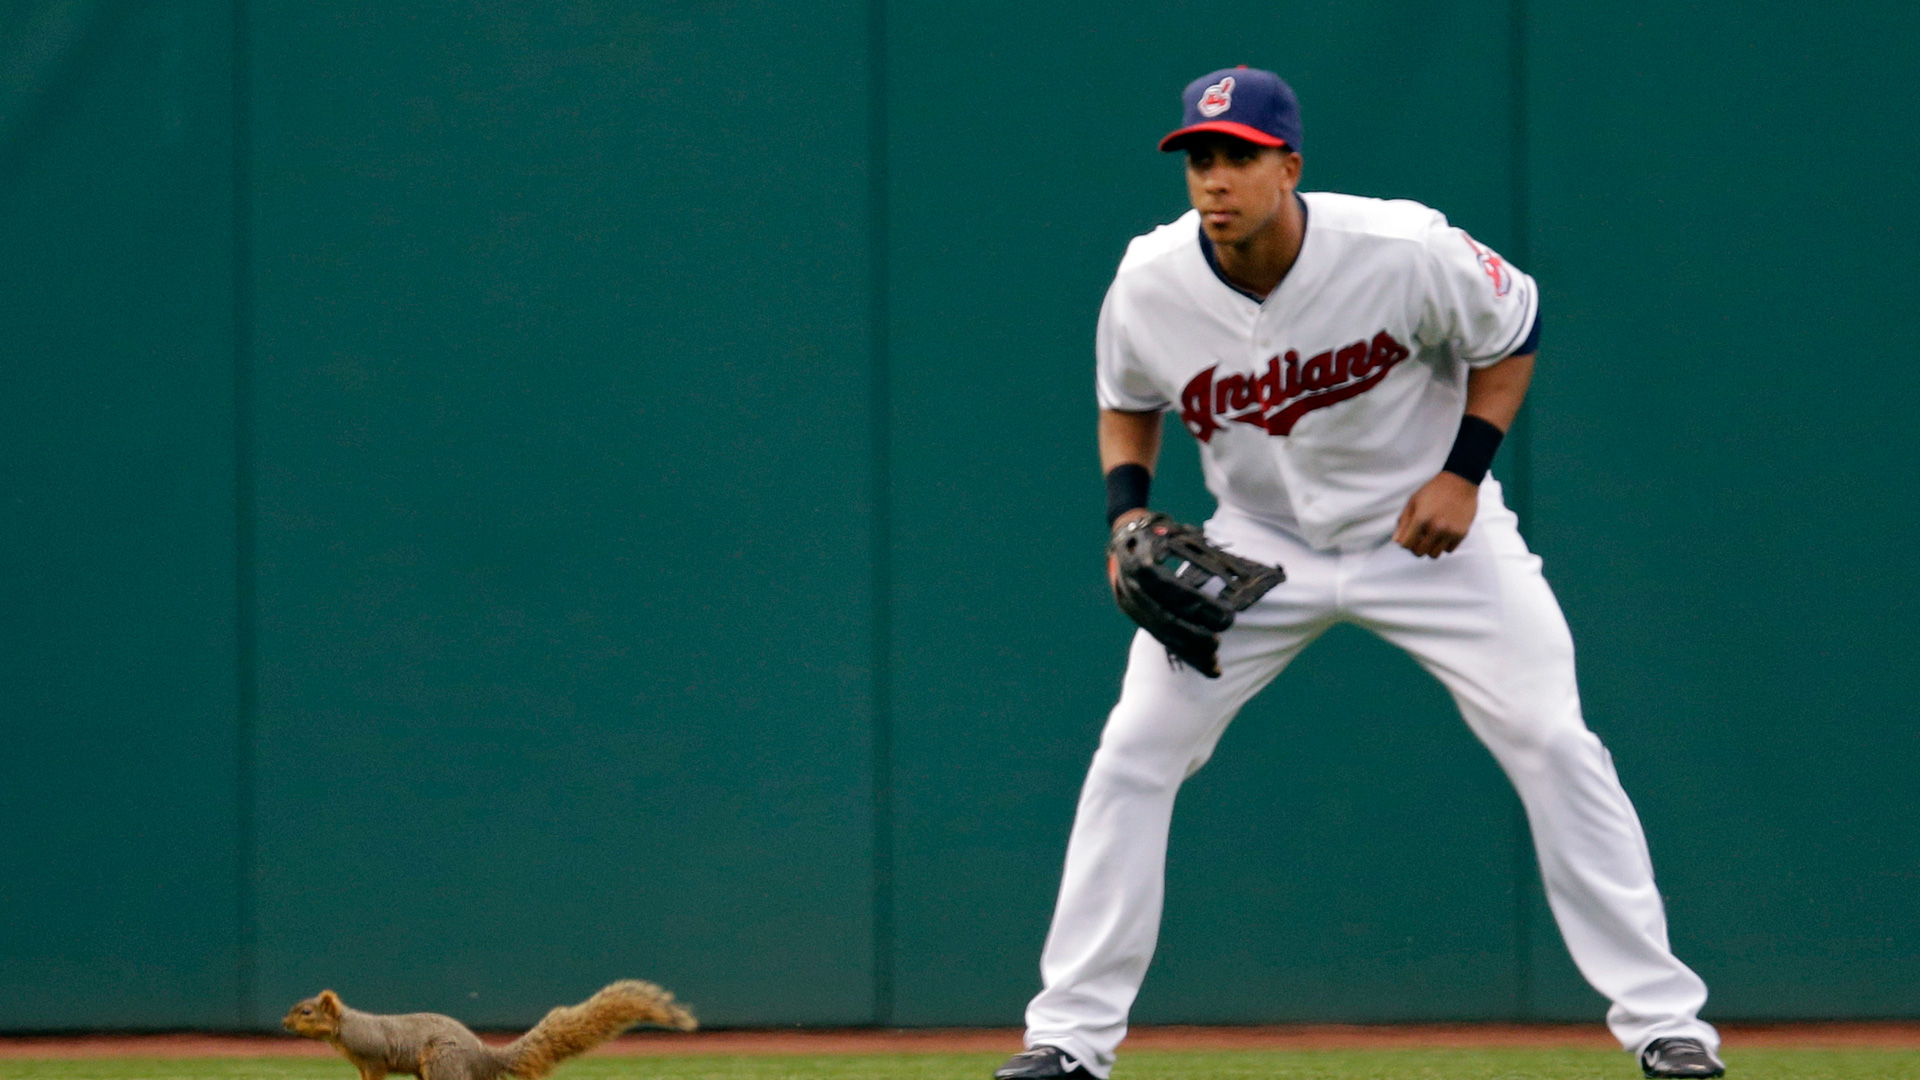 cleveland-indians-squirrel-042114-ap-ftr